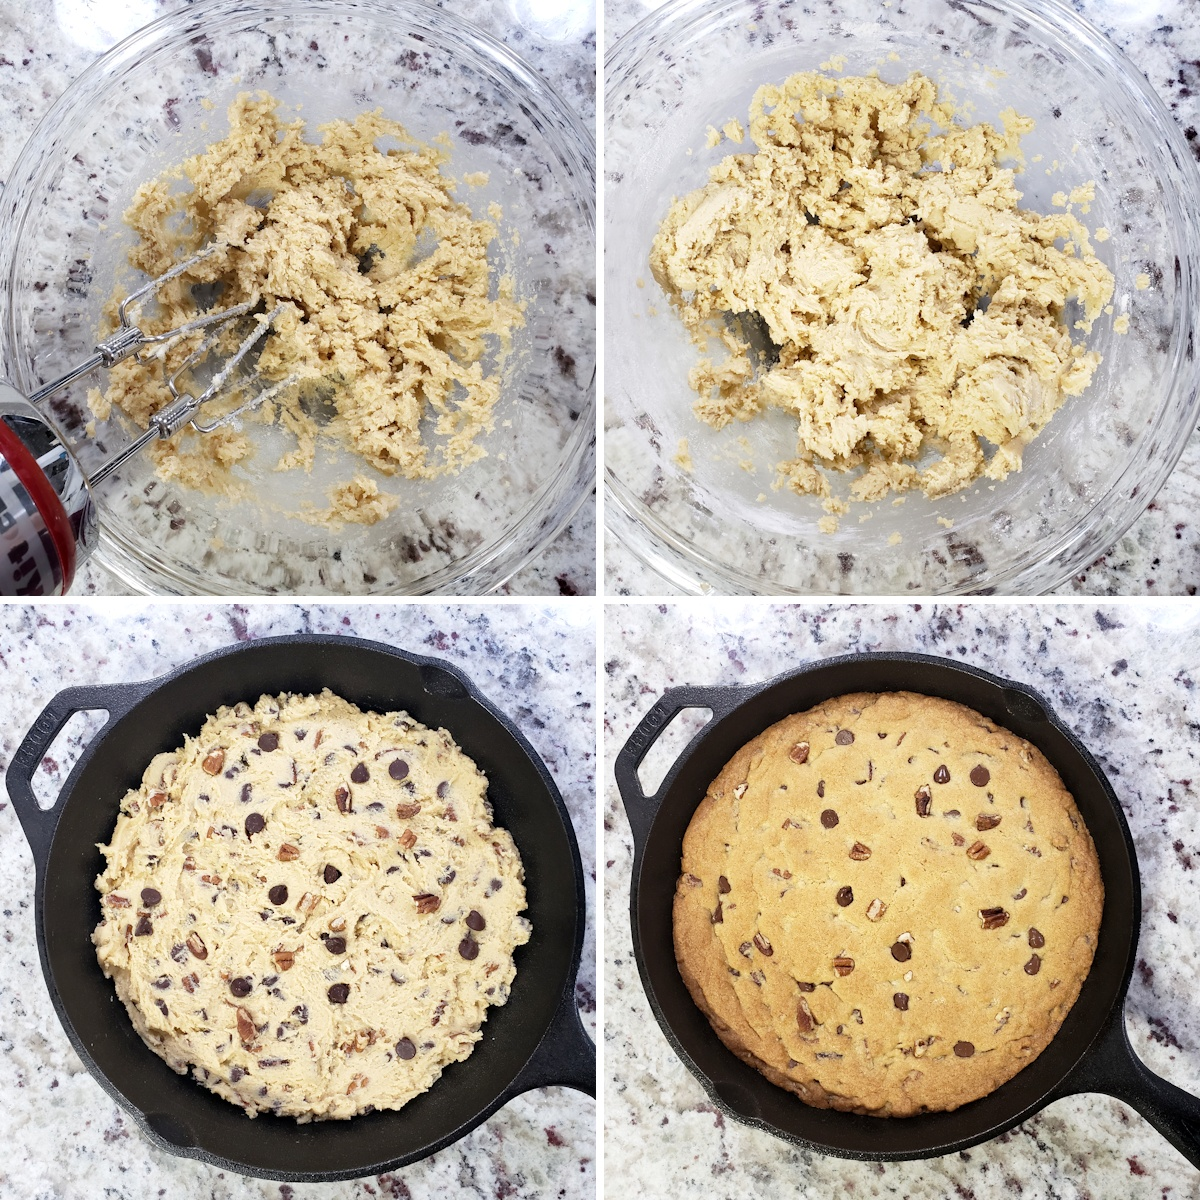 Mixing cookie dough and pressing into a cast iron skillet.